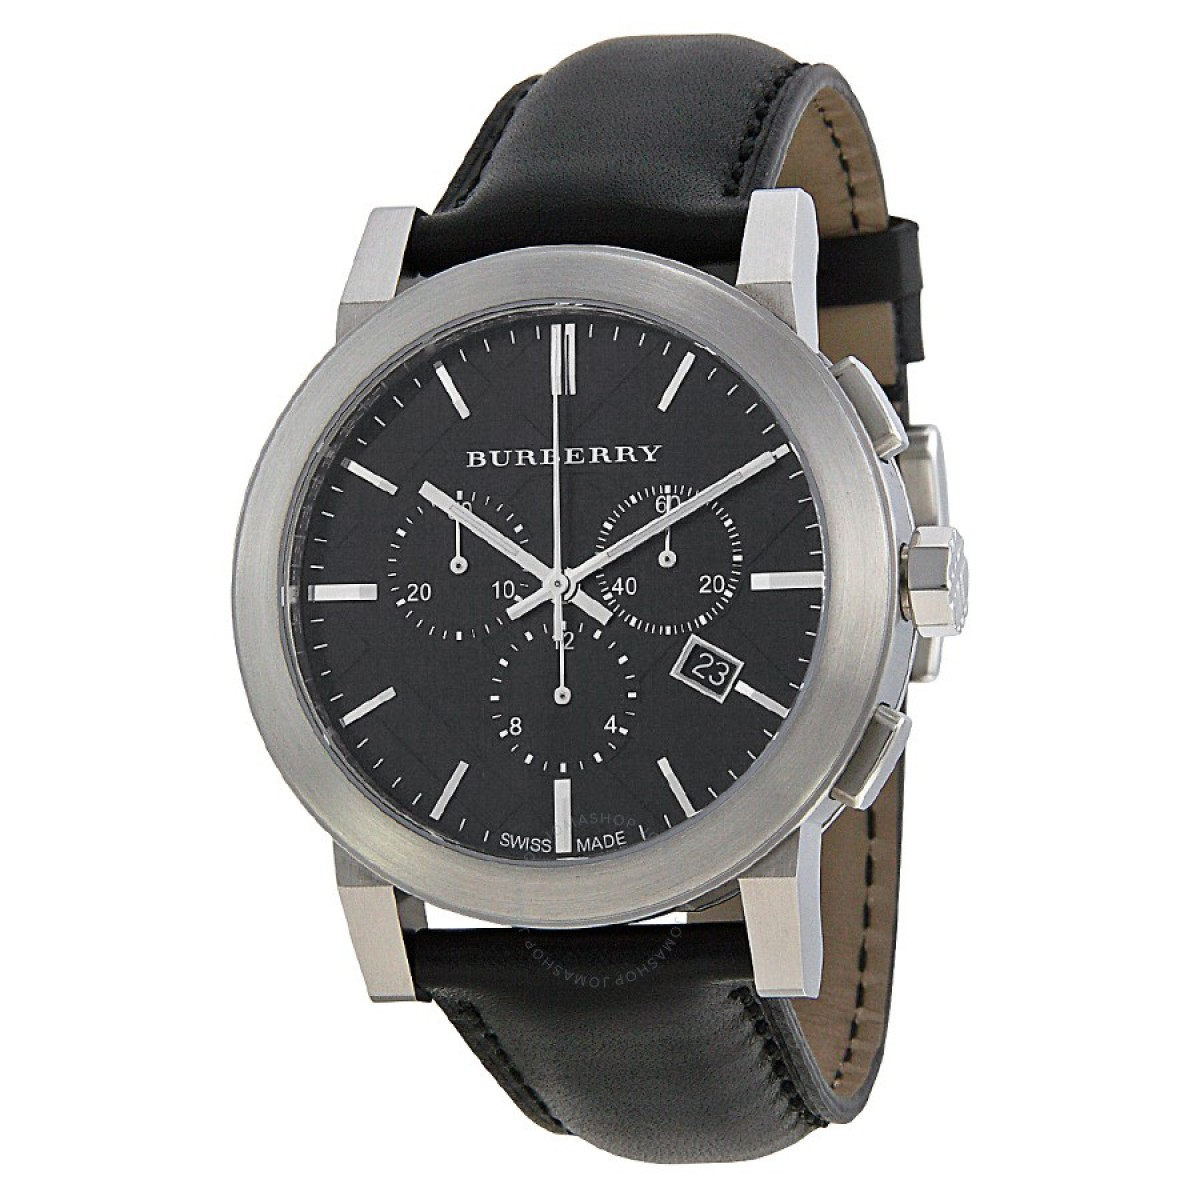 Mens Burberry Leather Chronograph Watch BU9356